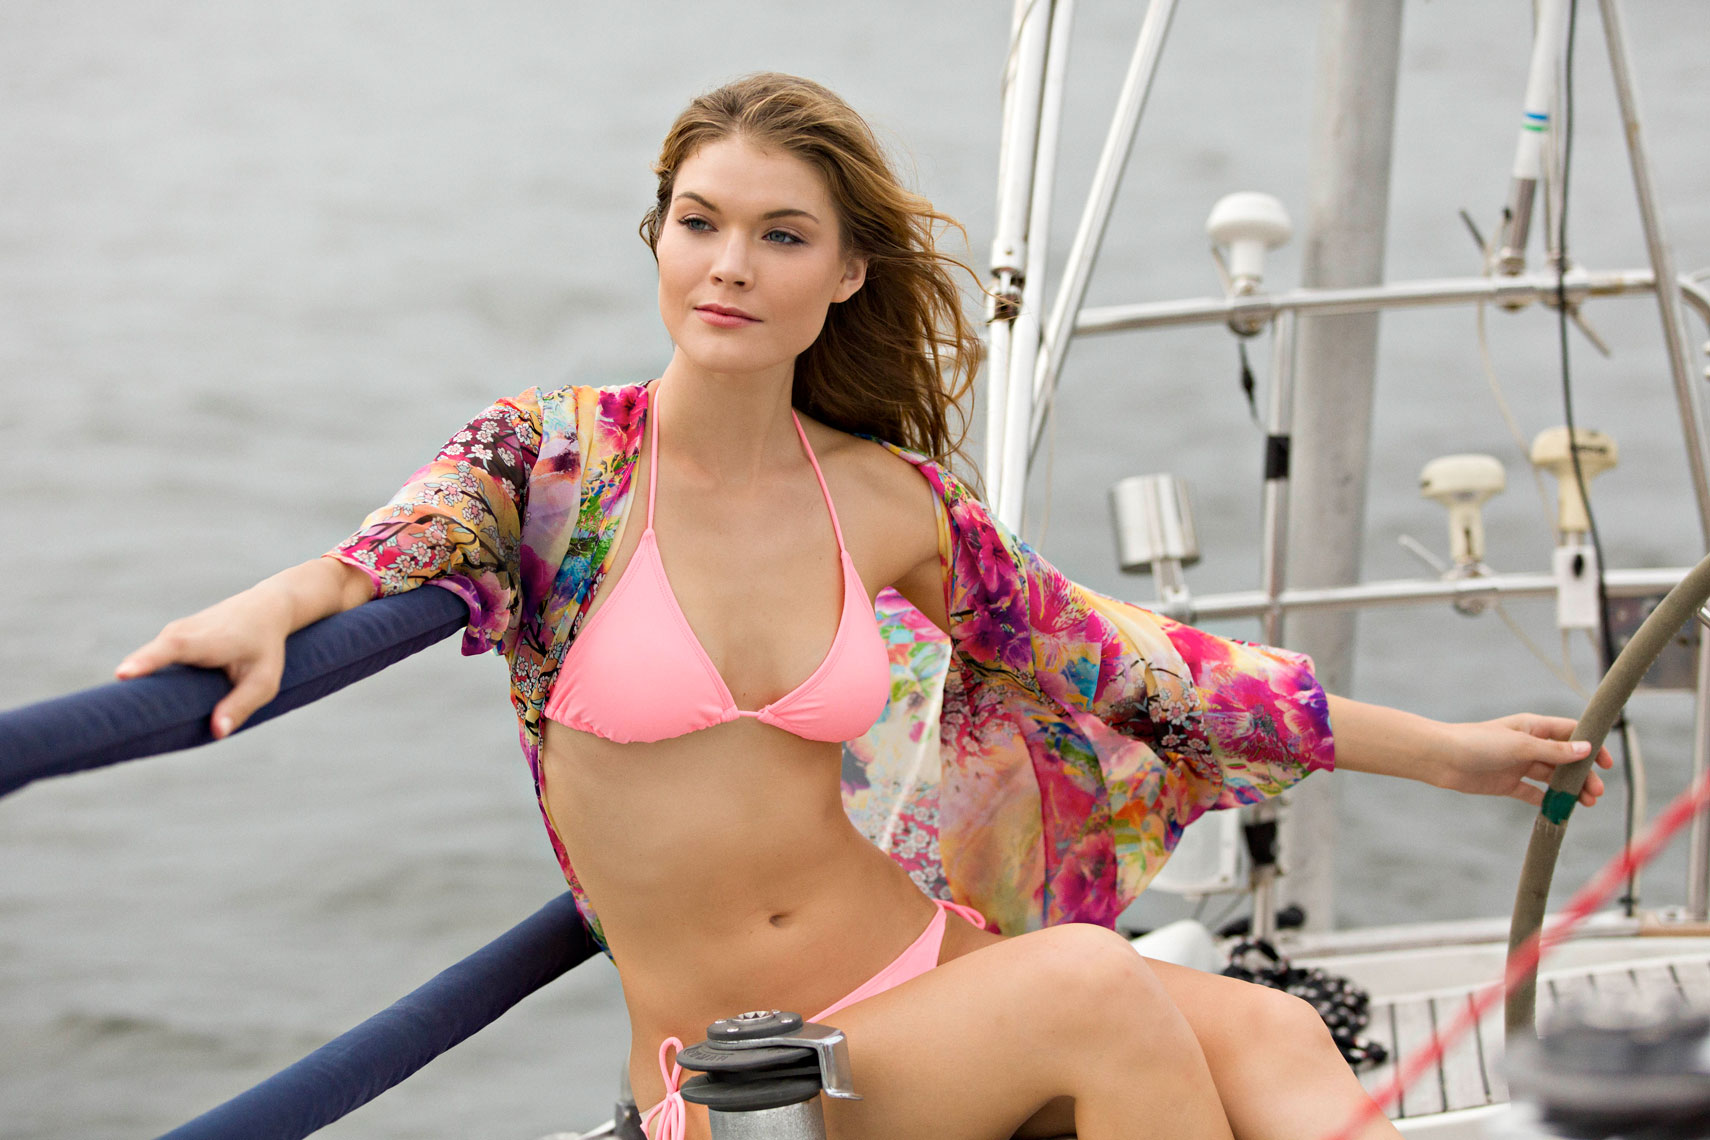 Samantha Drew,swimwear,bikini,sailboat,william heuberger fashion photographer